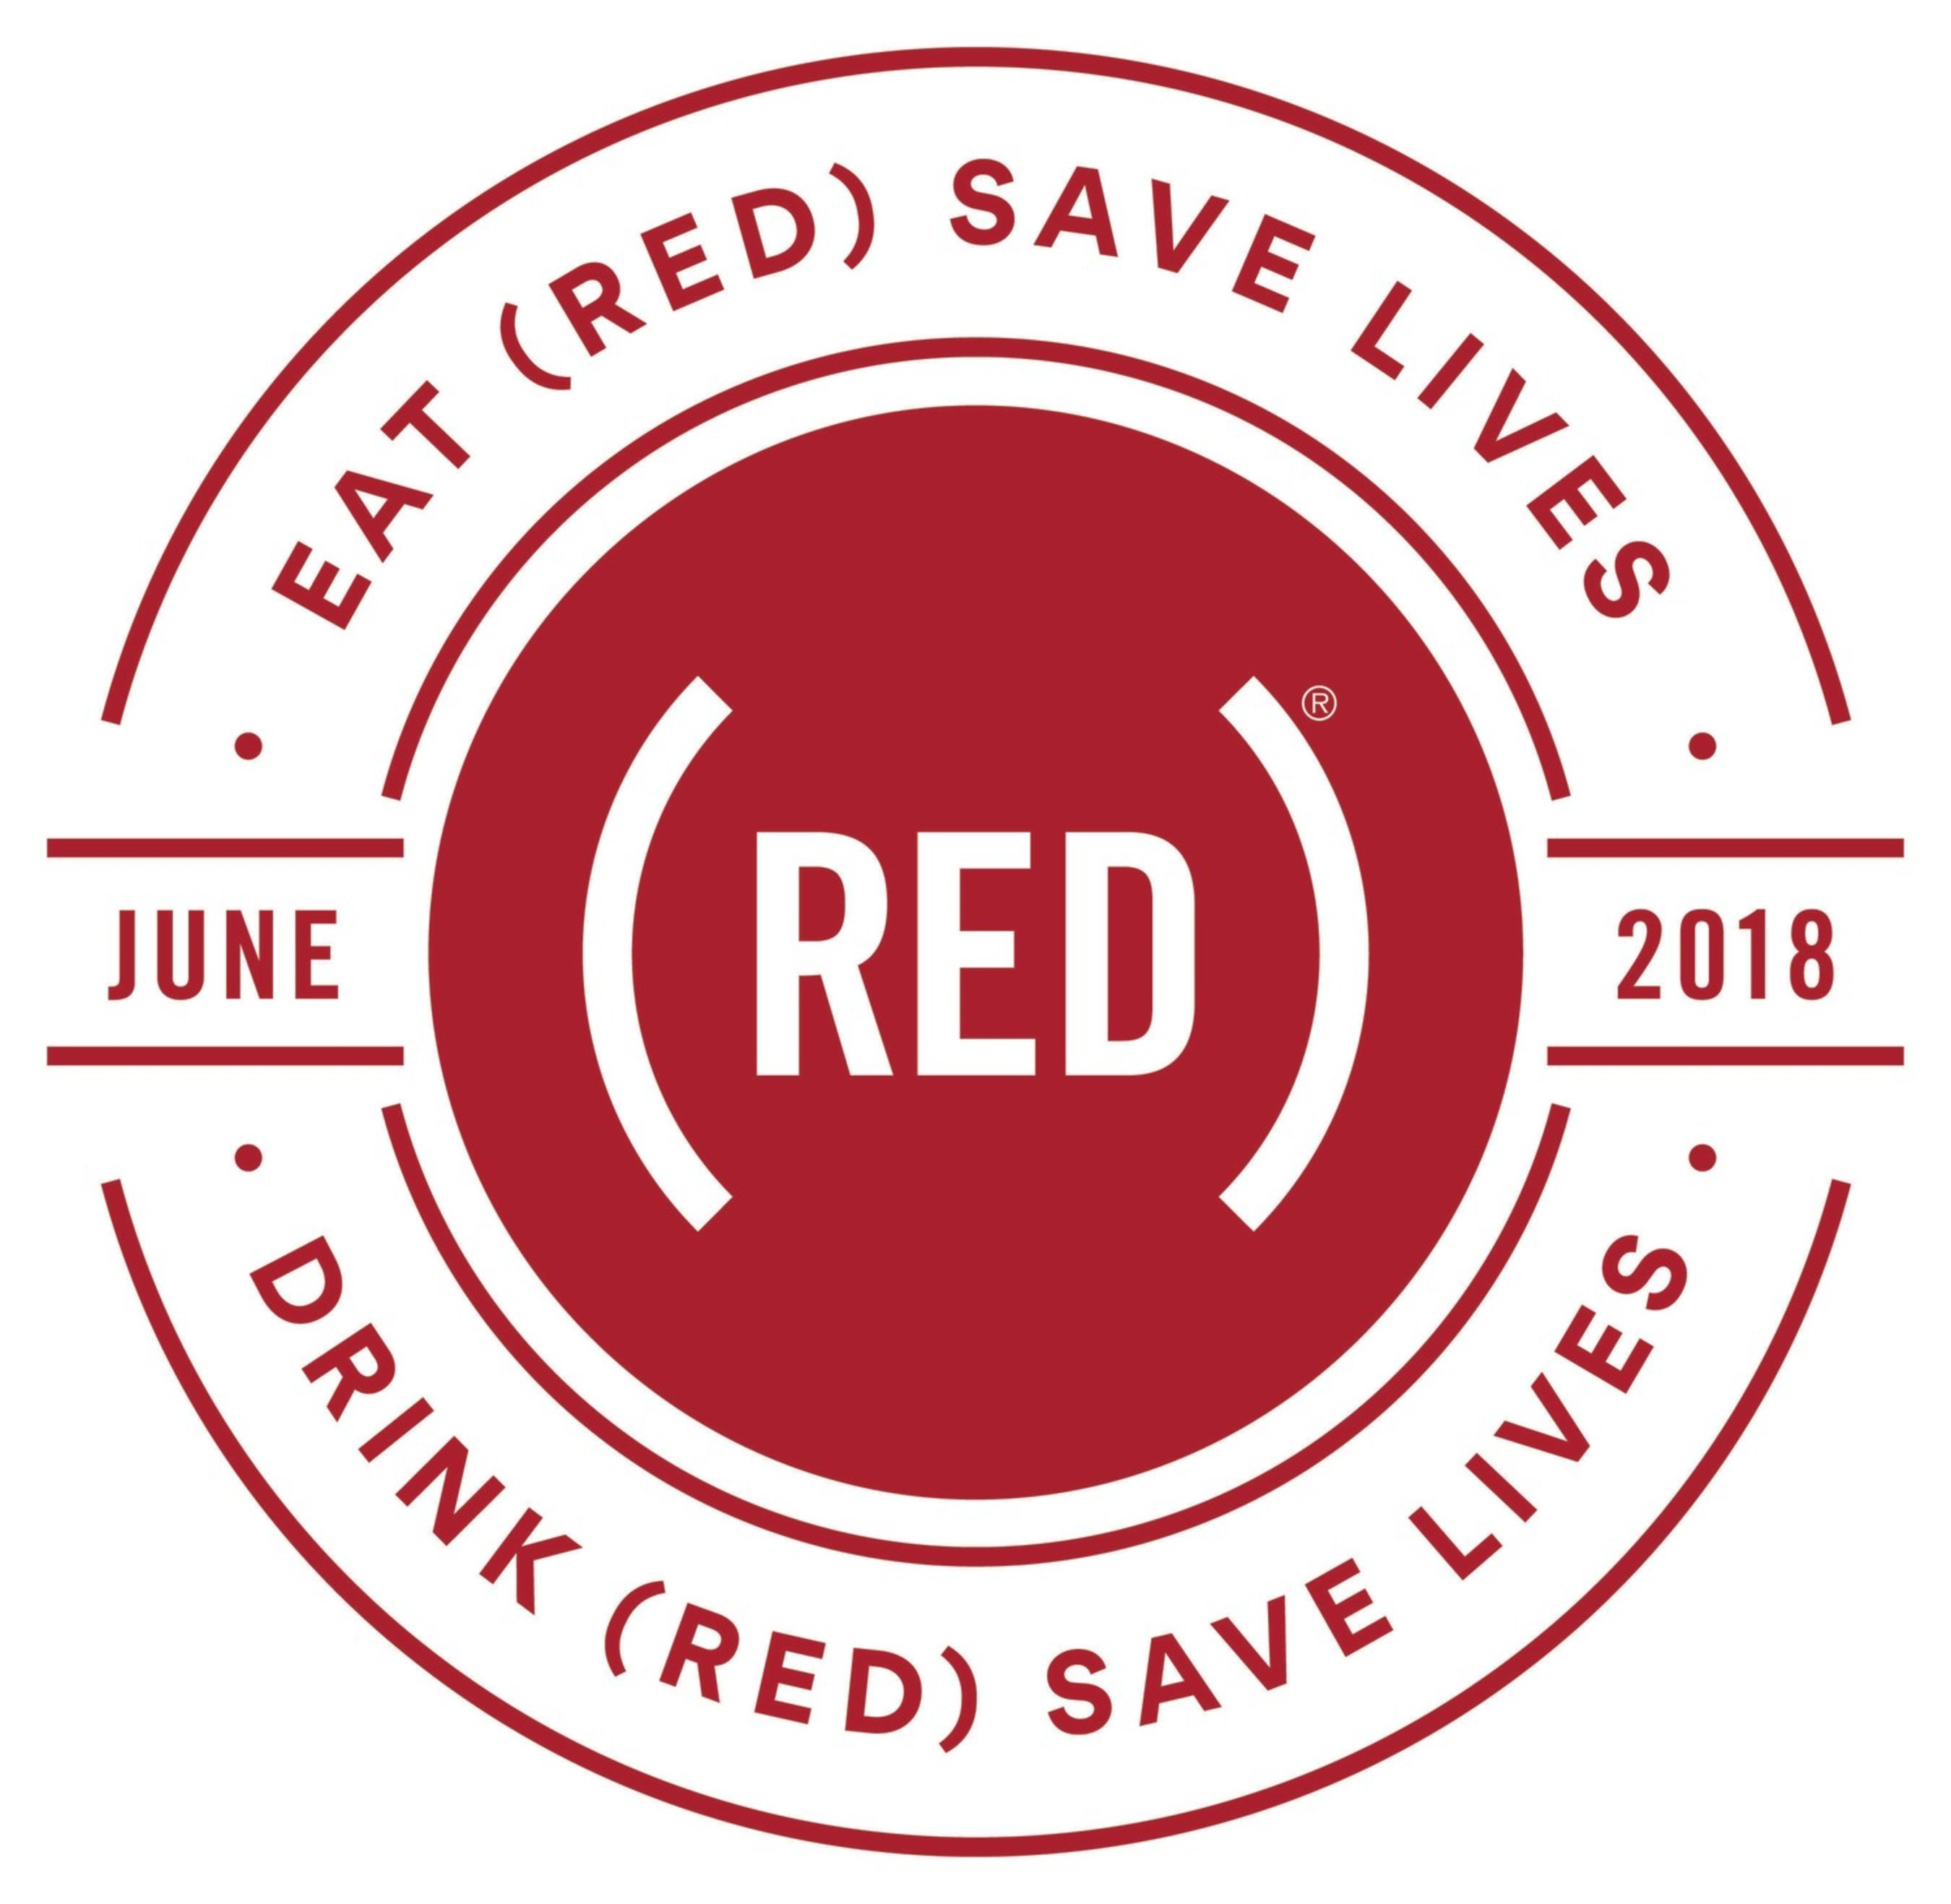 EAT (RED) SAVE LIVES 2018